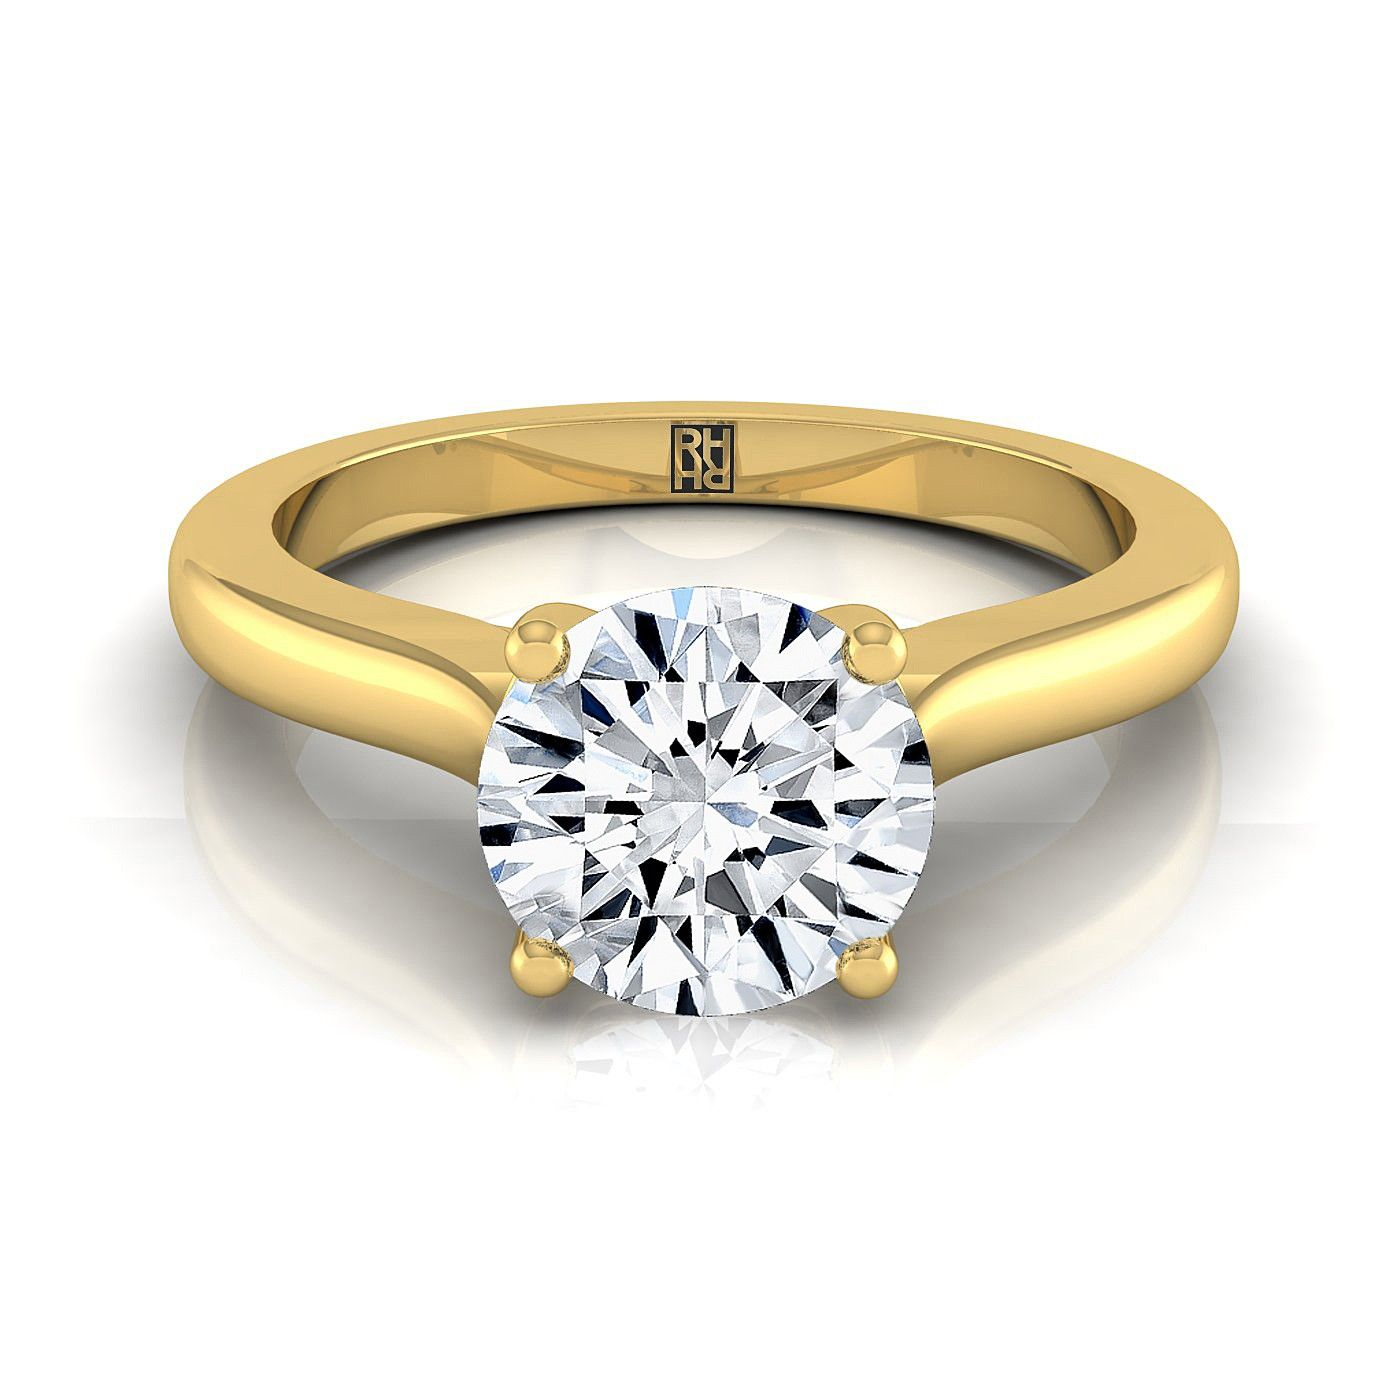 inspiration custom rings profile grey handcrafted creative engagement diamond ring solitaire margaret dousset jean